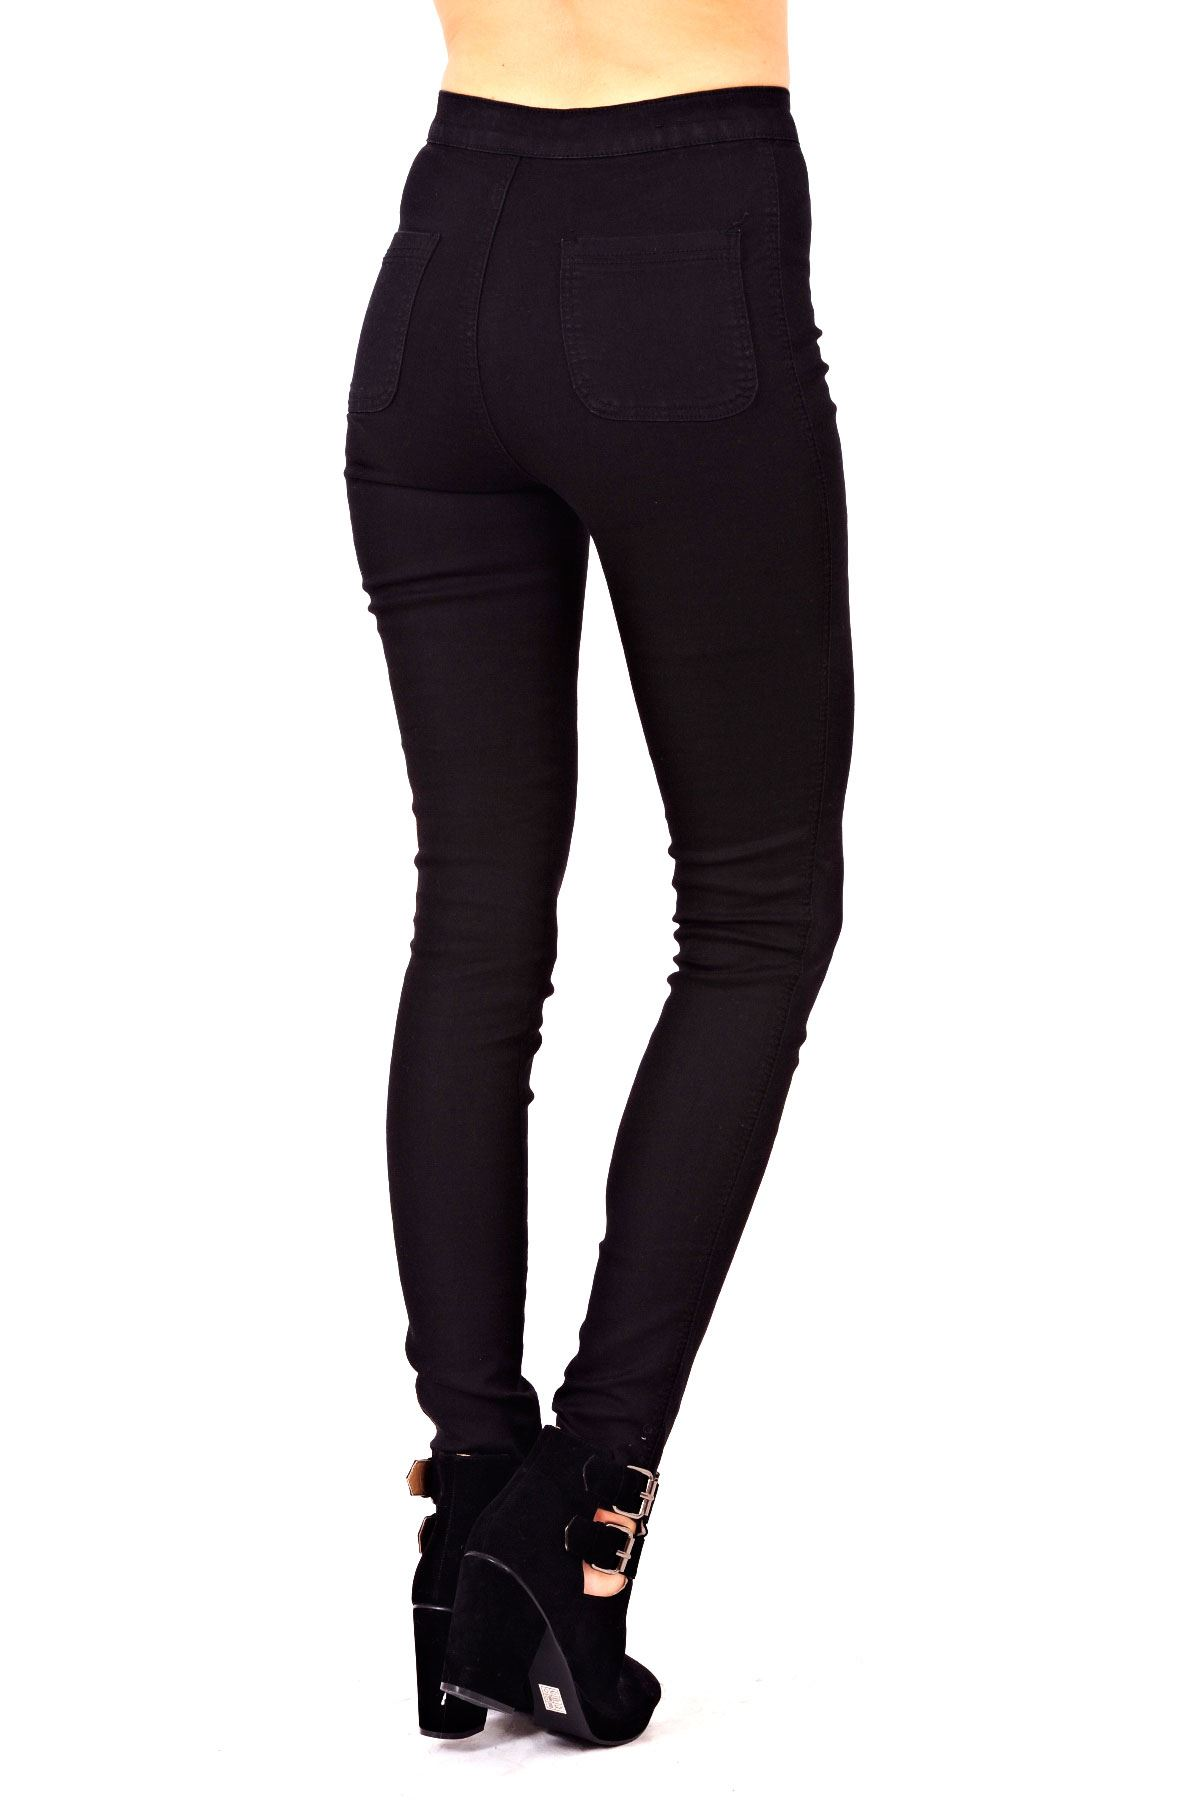 New Womens Ladies Skinny Slim Fit High Waisted Stretch Denim Black Jeans Trouser